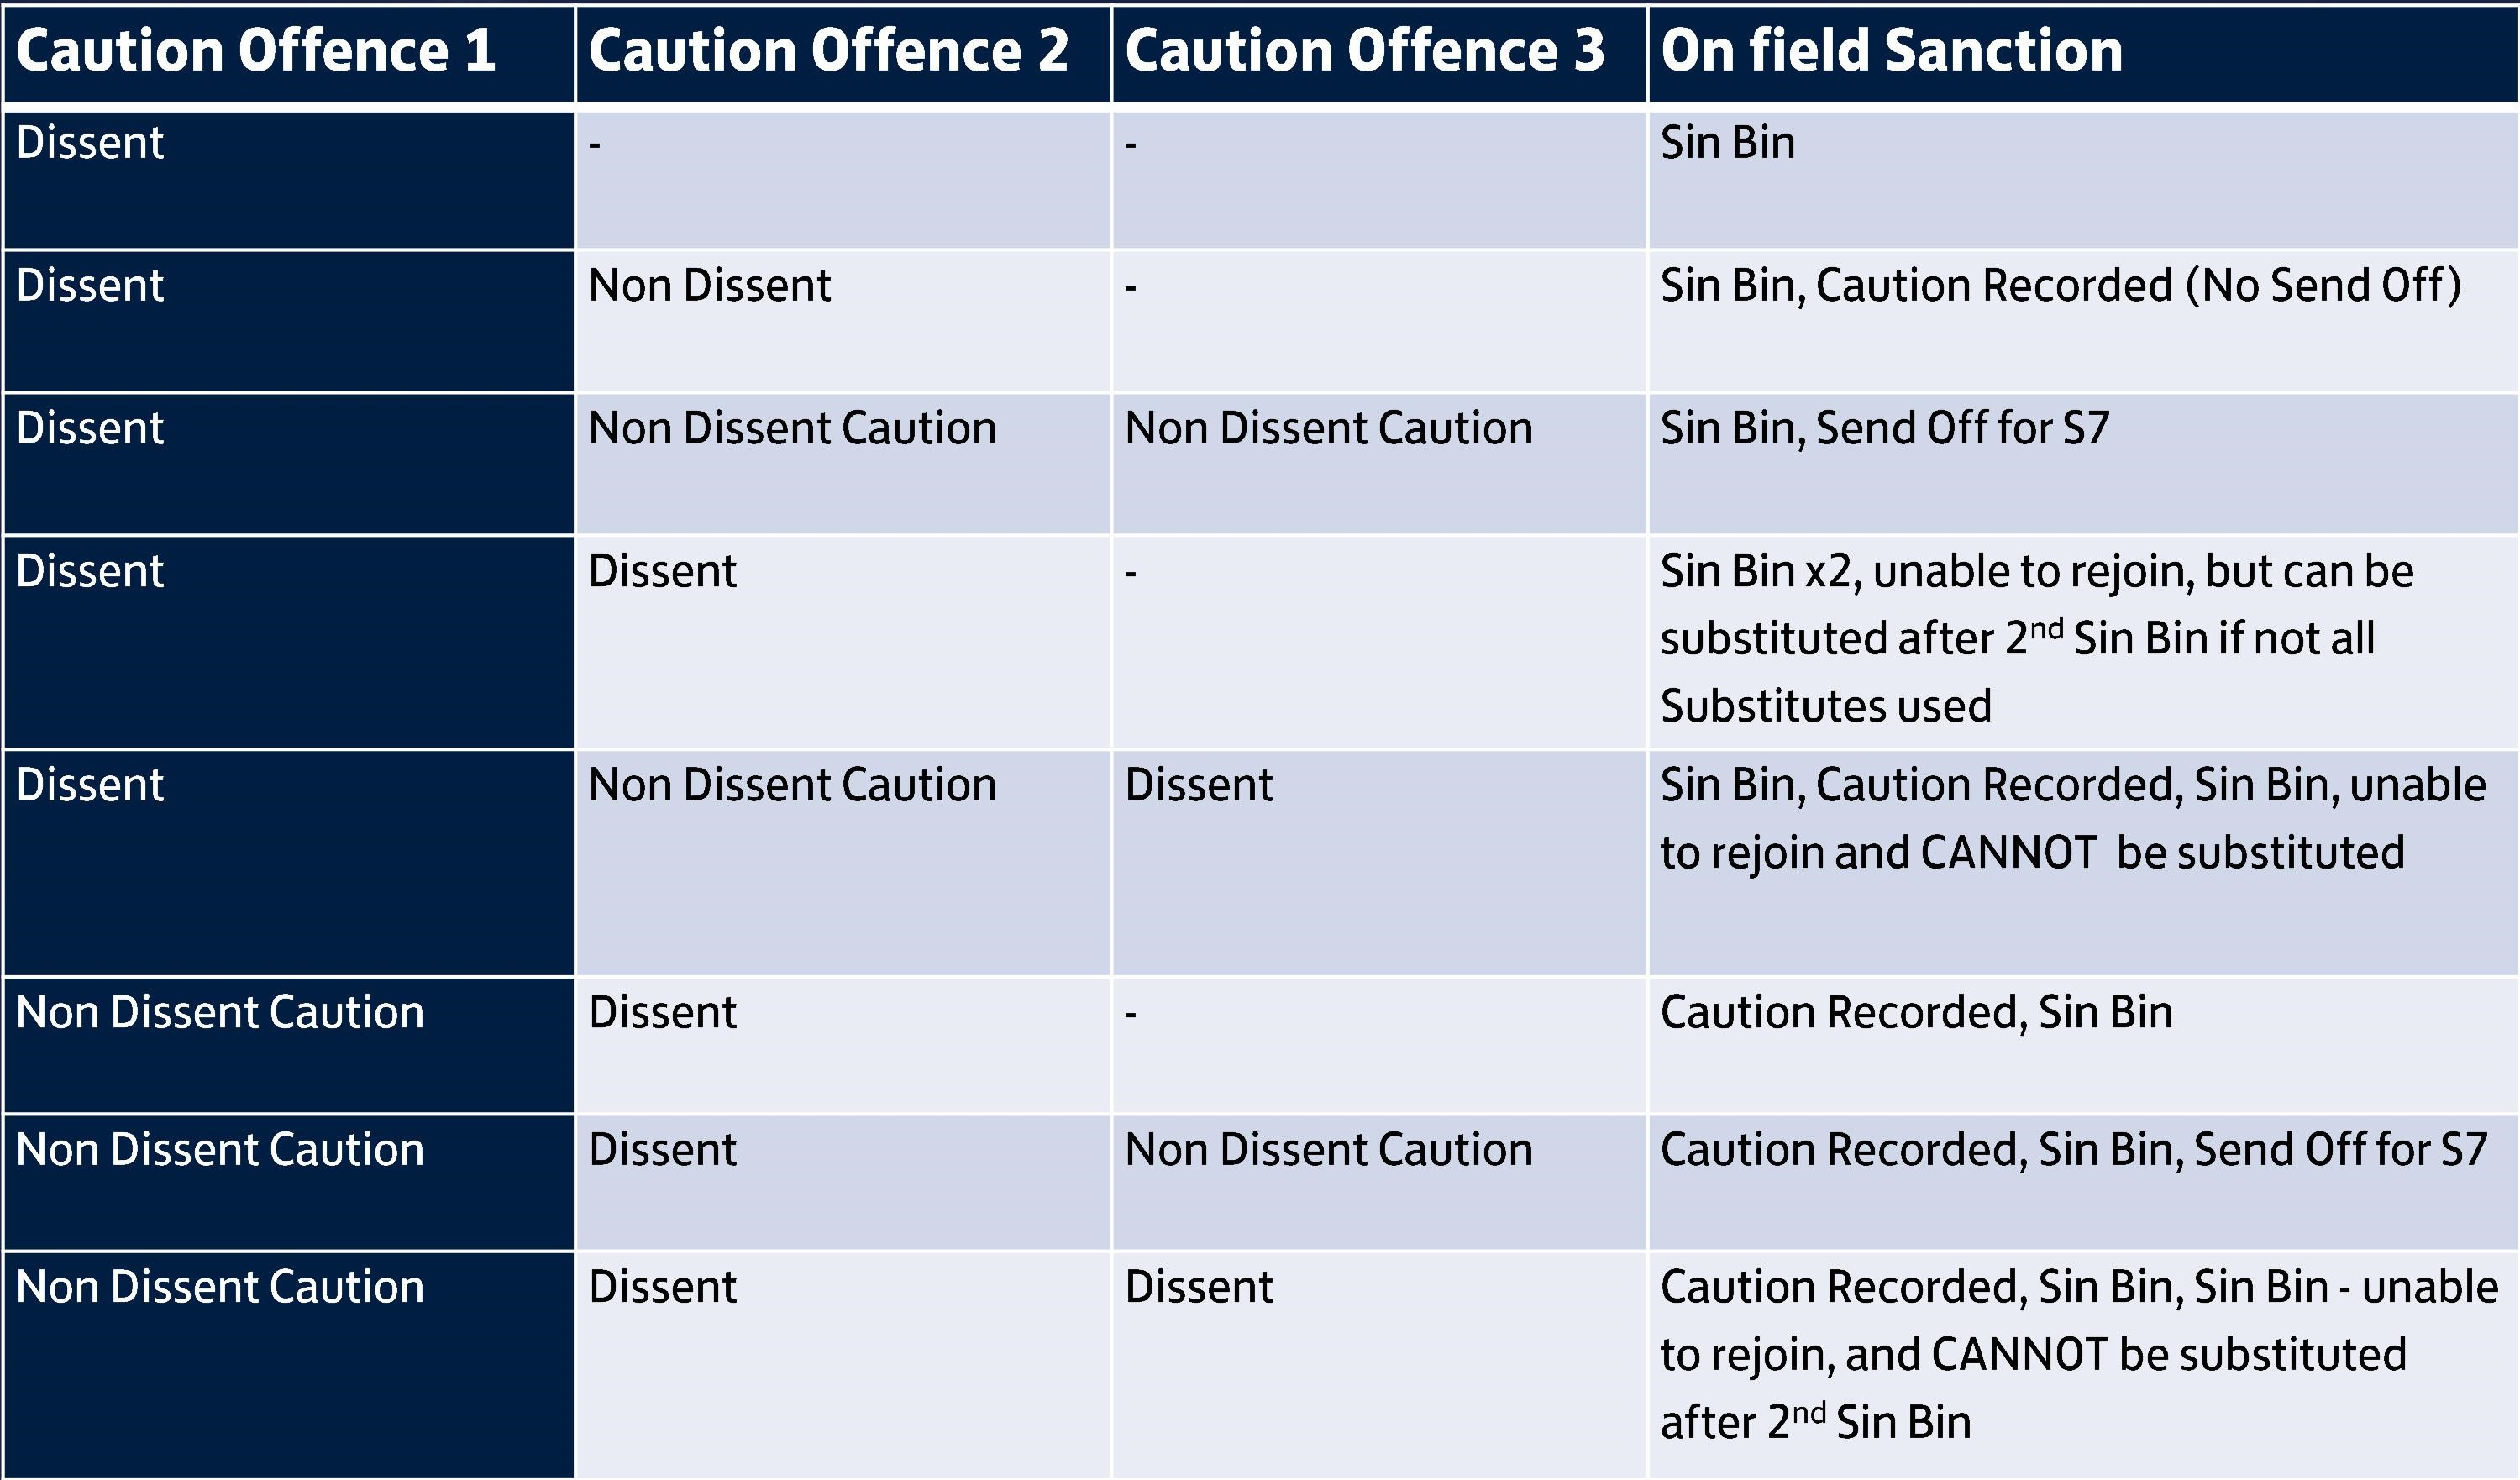 sin-bins-multiple-offences-summary-table